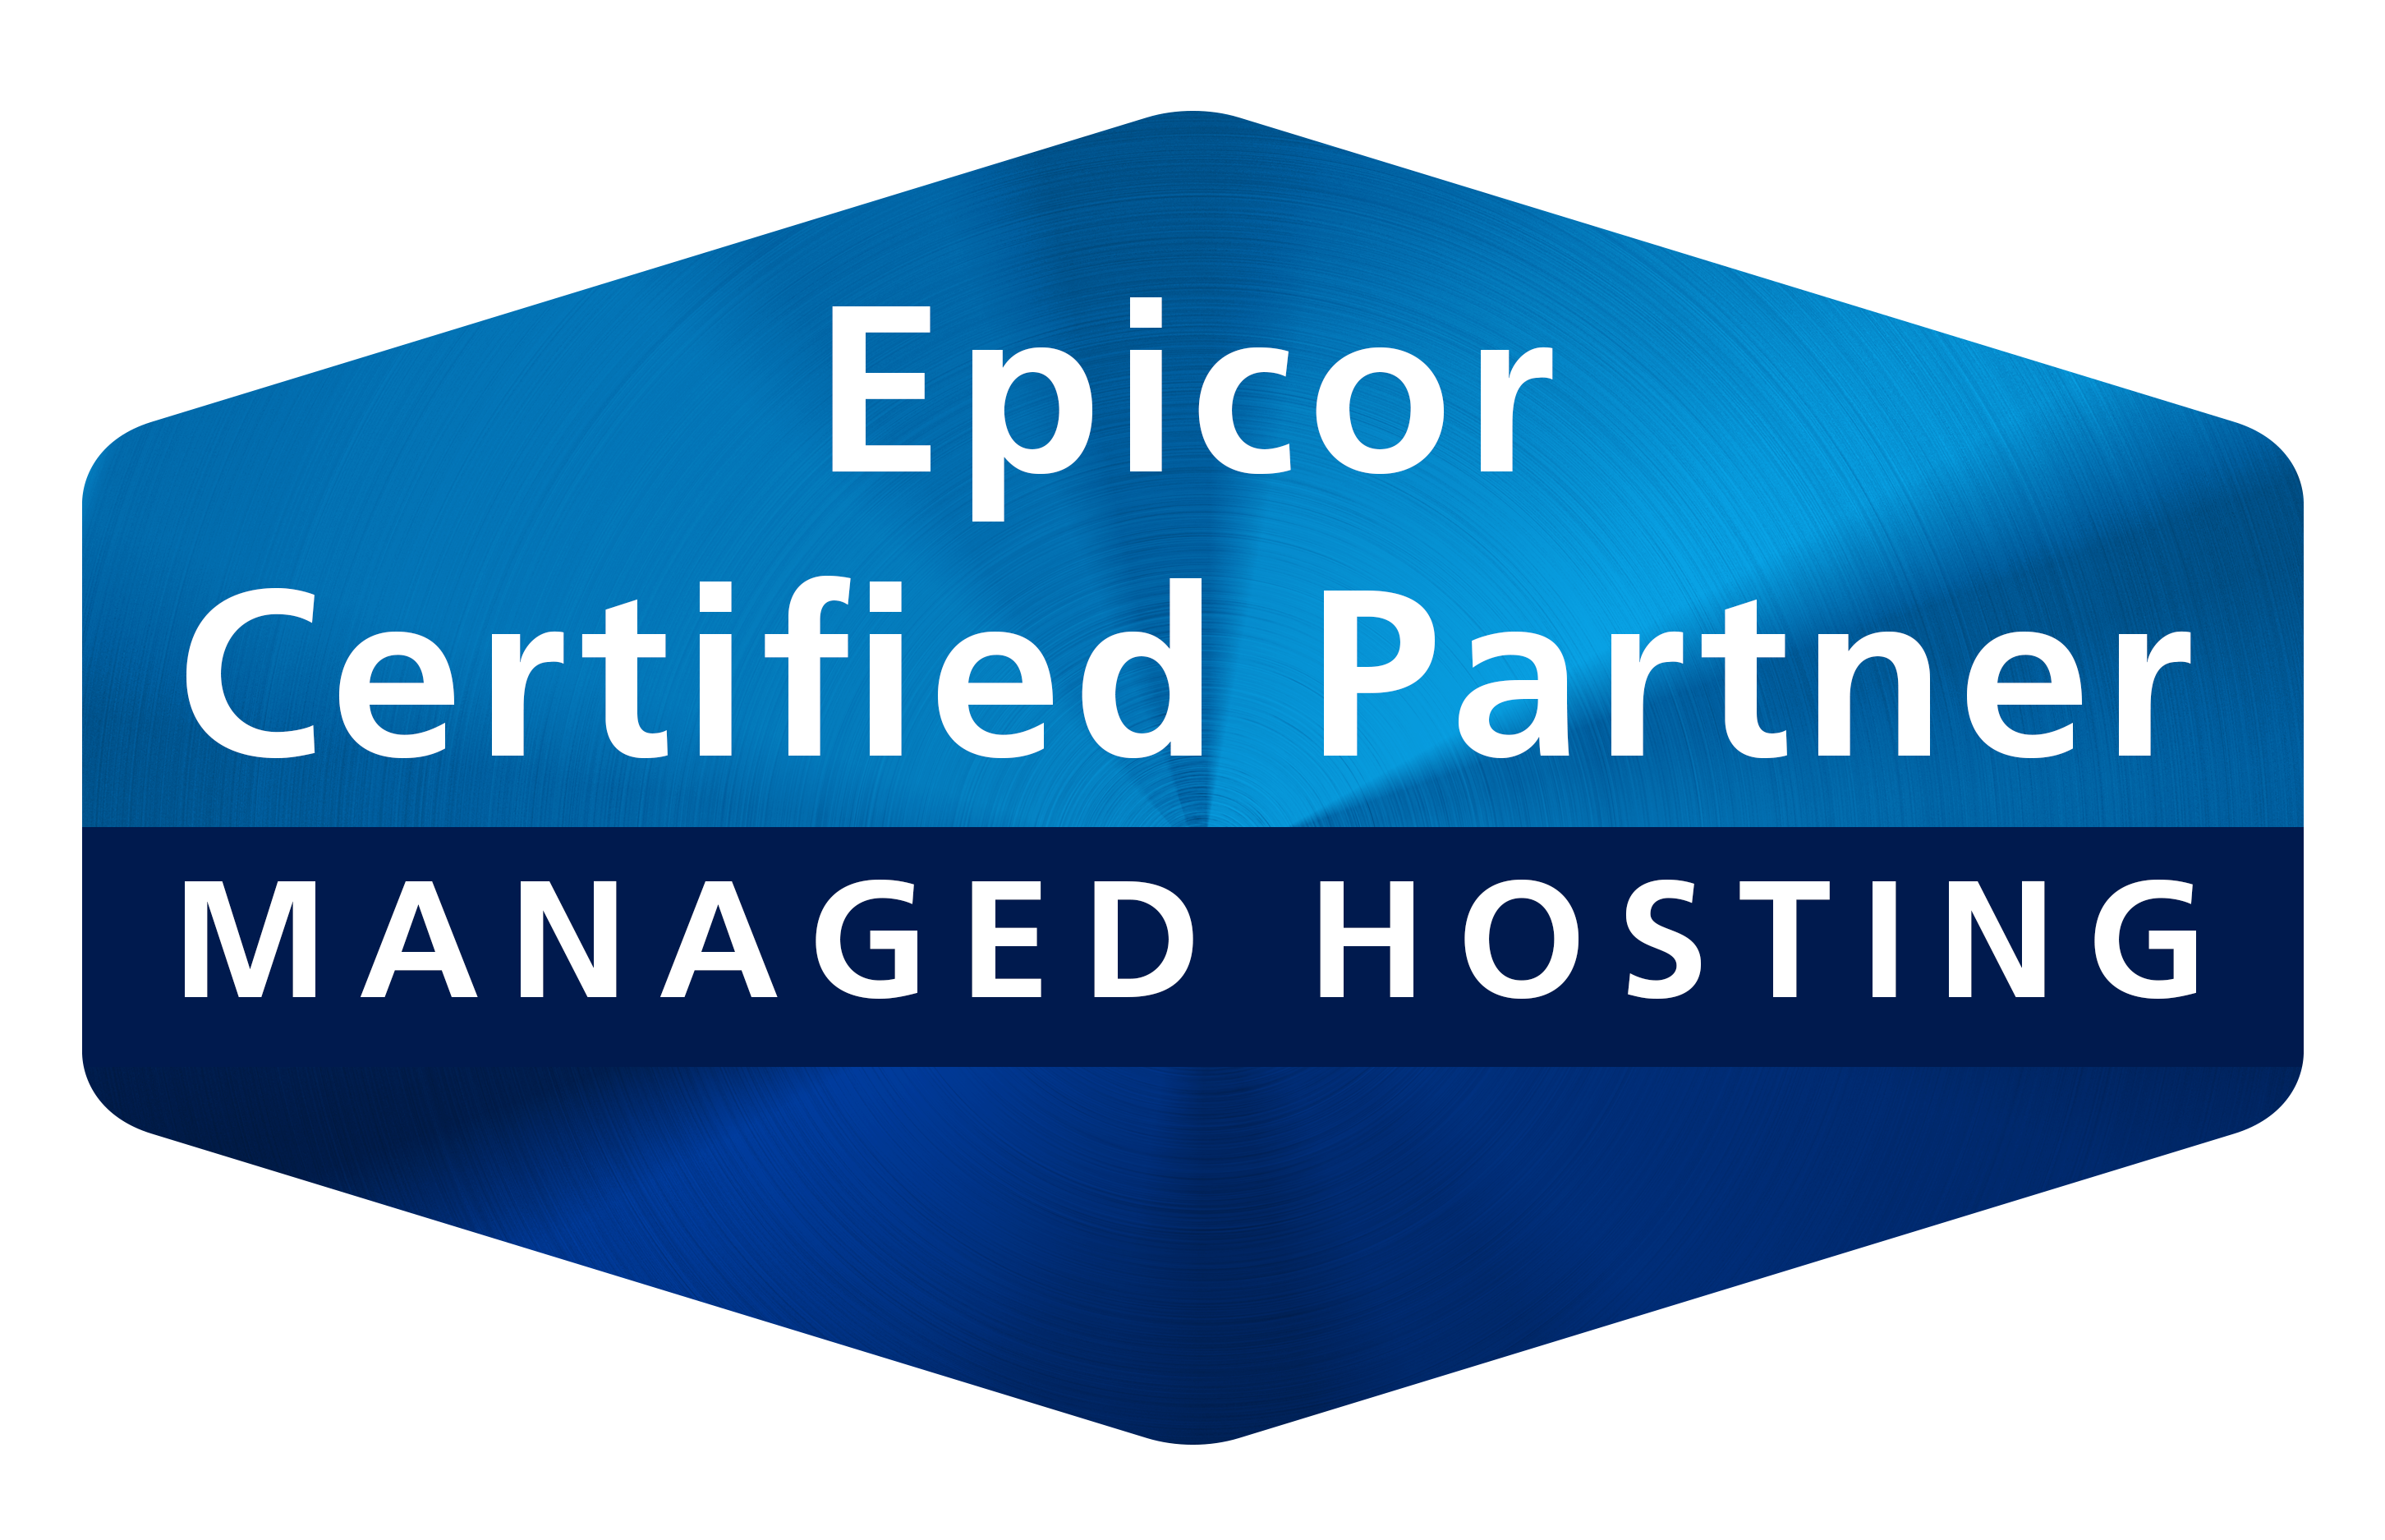 Hosted Epicor Certified Partner